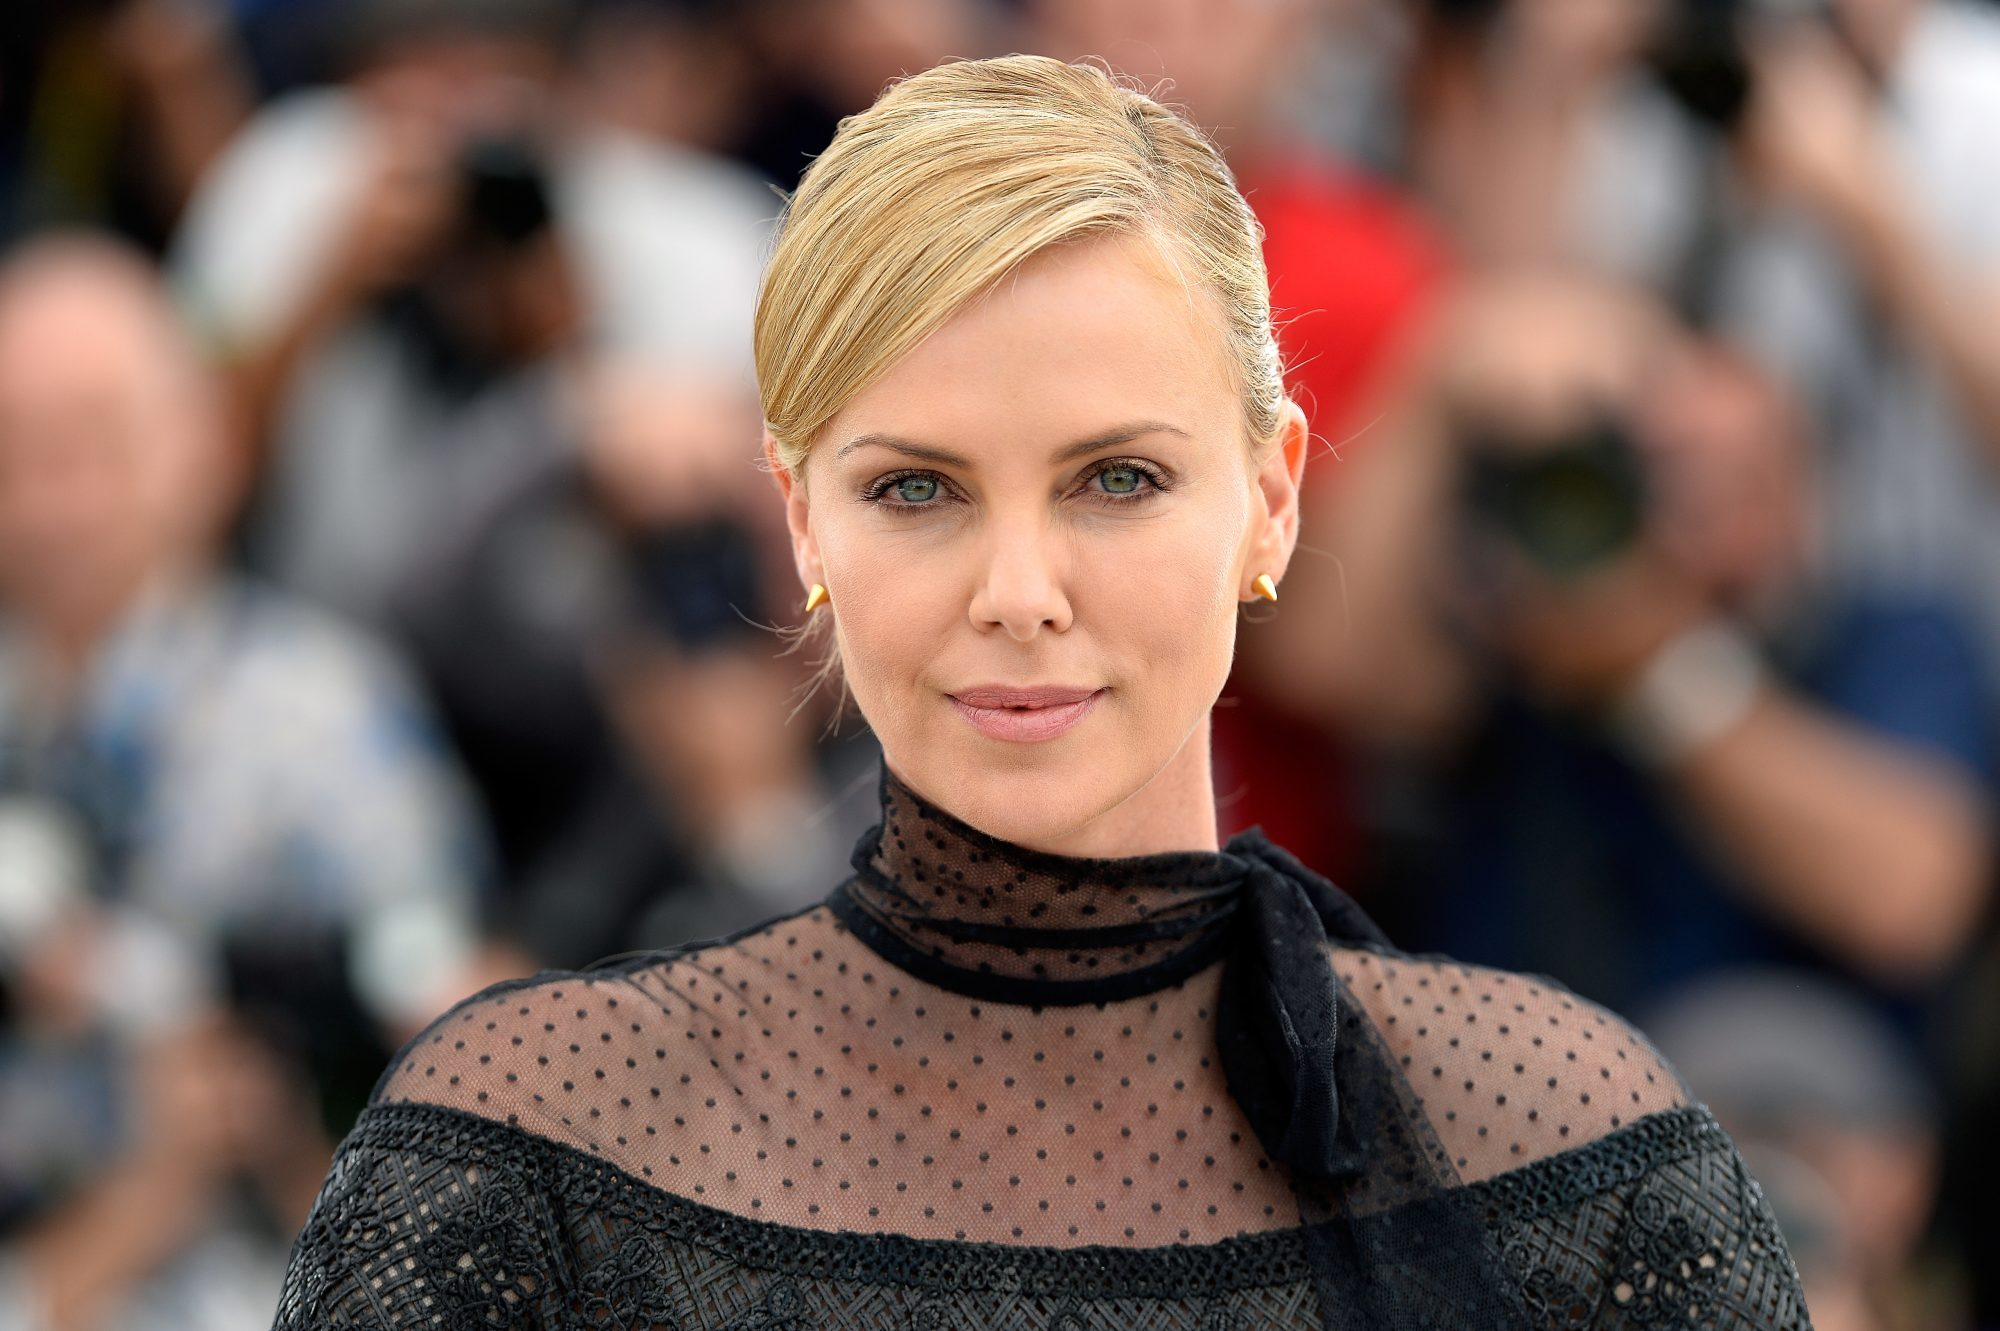 charlize theron homeschool daughters coronavirus